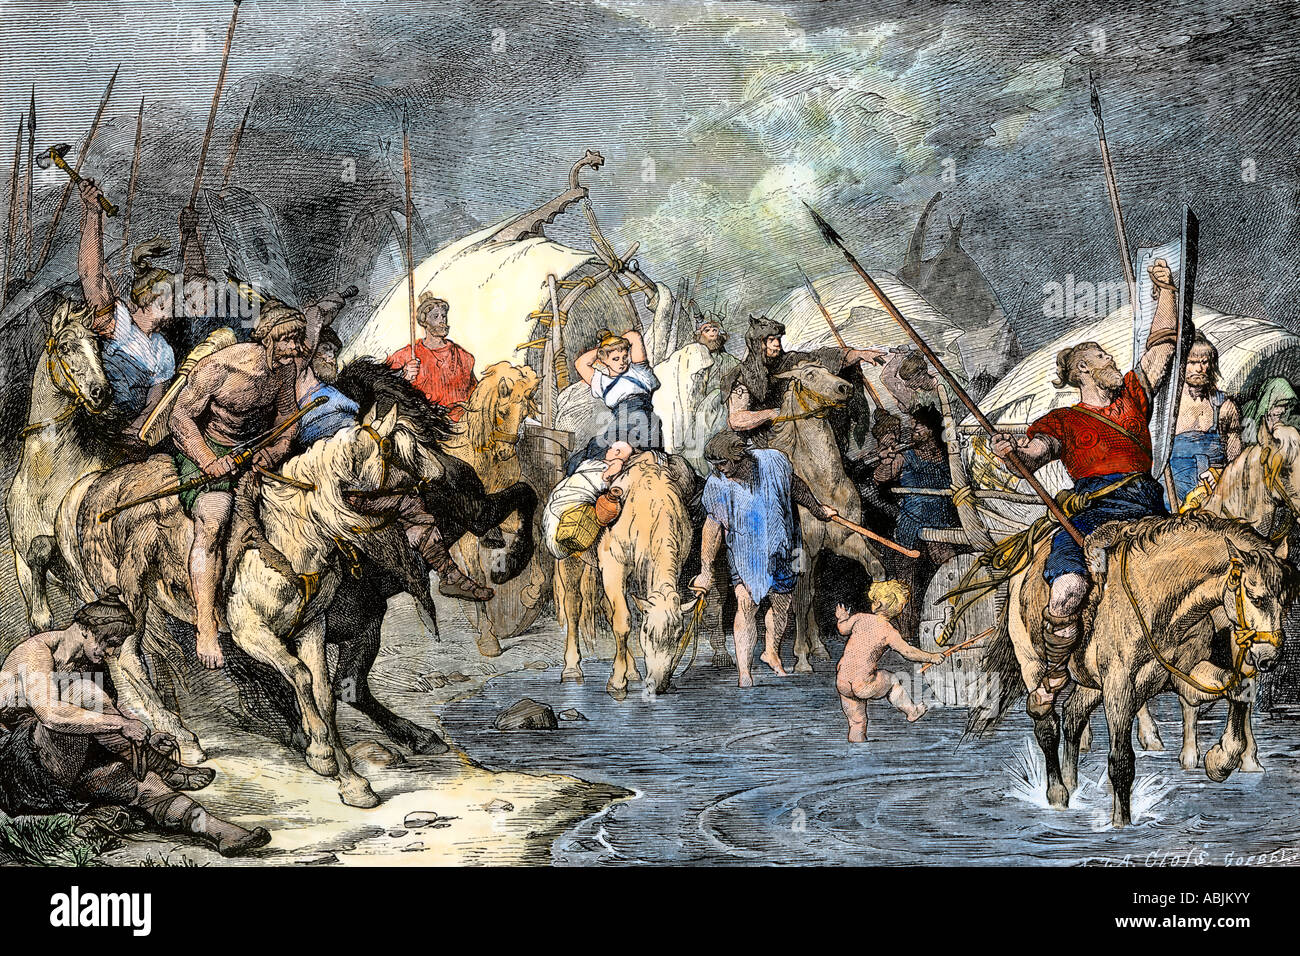 Migrating Teutons enter Gaul in ancient times. Hand-colored woodcut - Stock Image